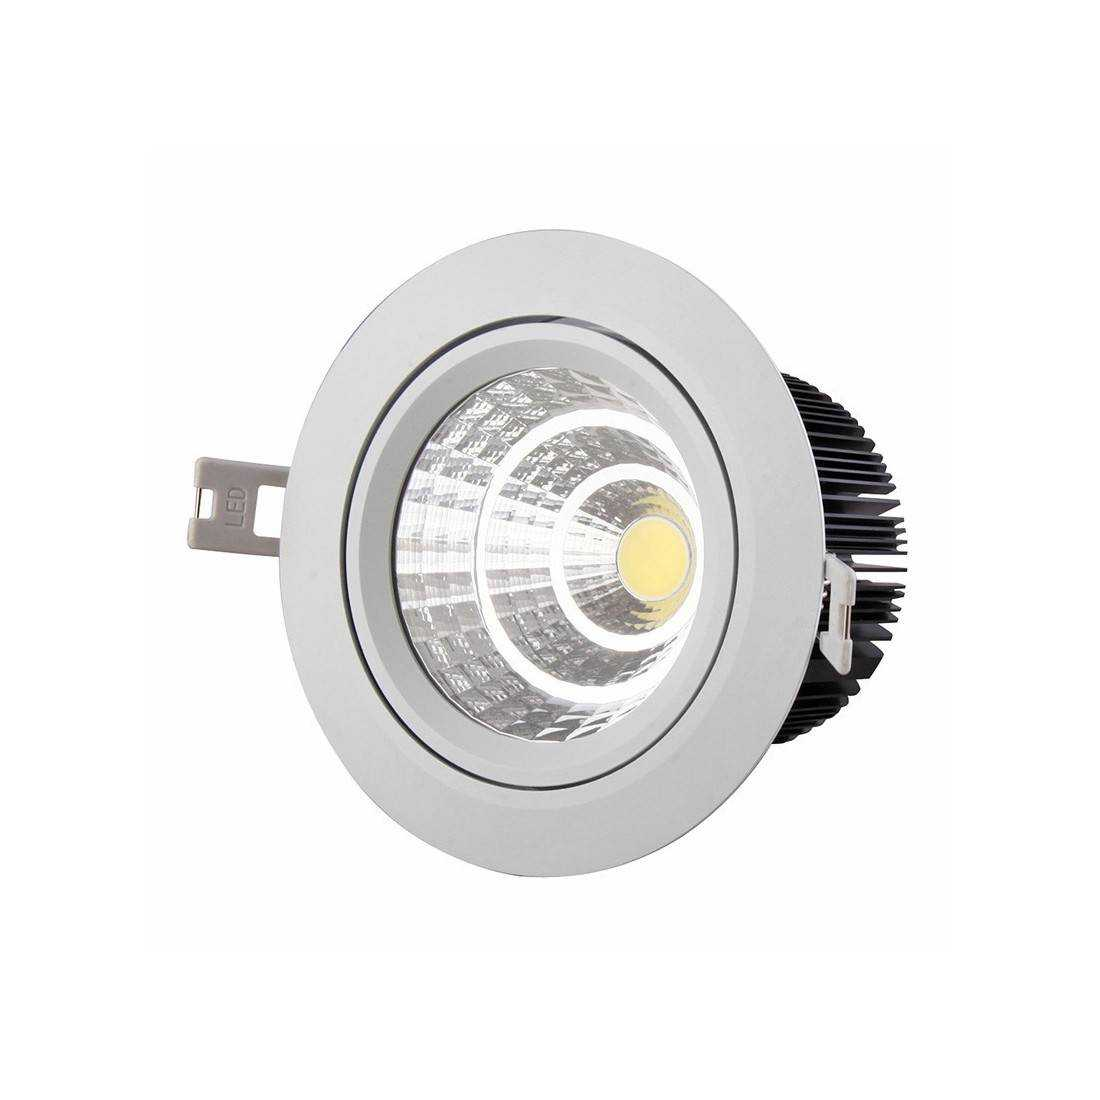 spot led cob encastrable 7w 230v